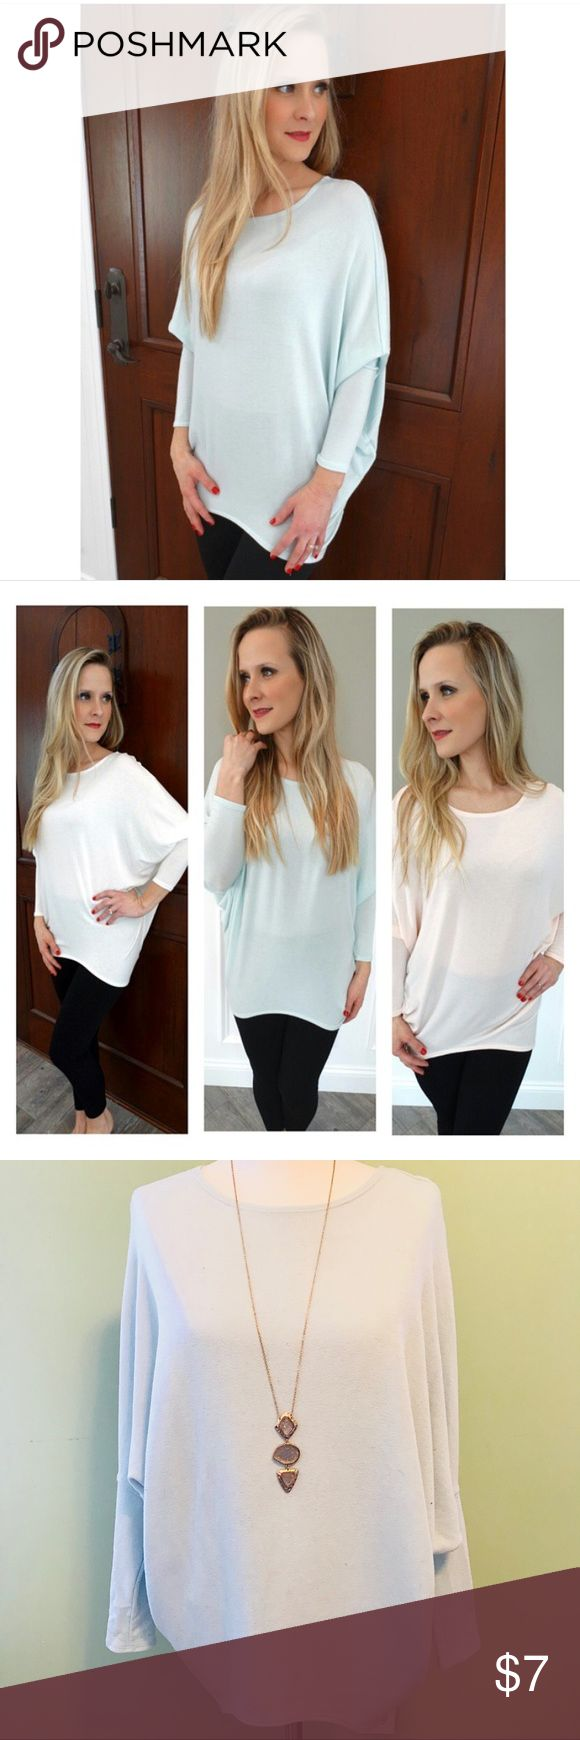 Dolman top ❄️ Cozy top with dolman sleeves. Easy to dress up or down! I have one in pale mint and one in ivory. Can be sold individually or together as a discounted bundle!! Jolie Tops Tees - Long Sleeve